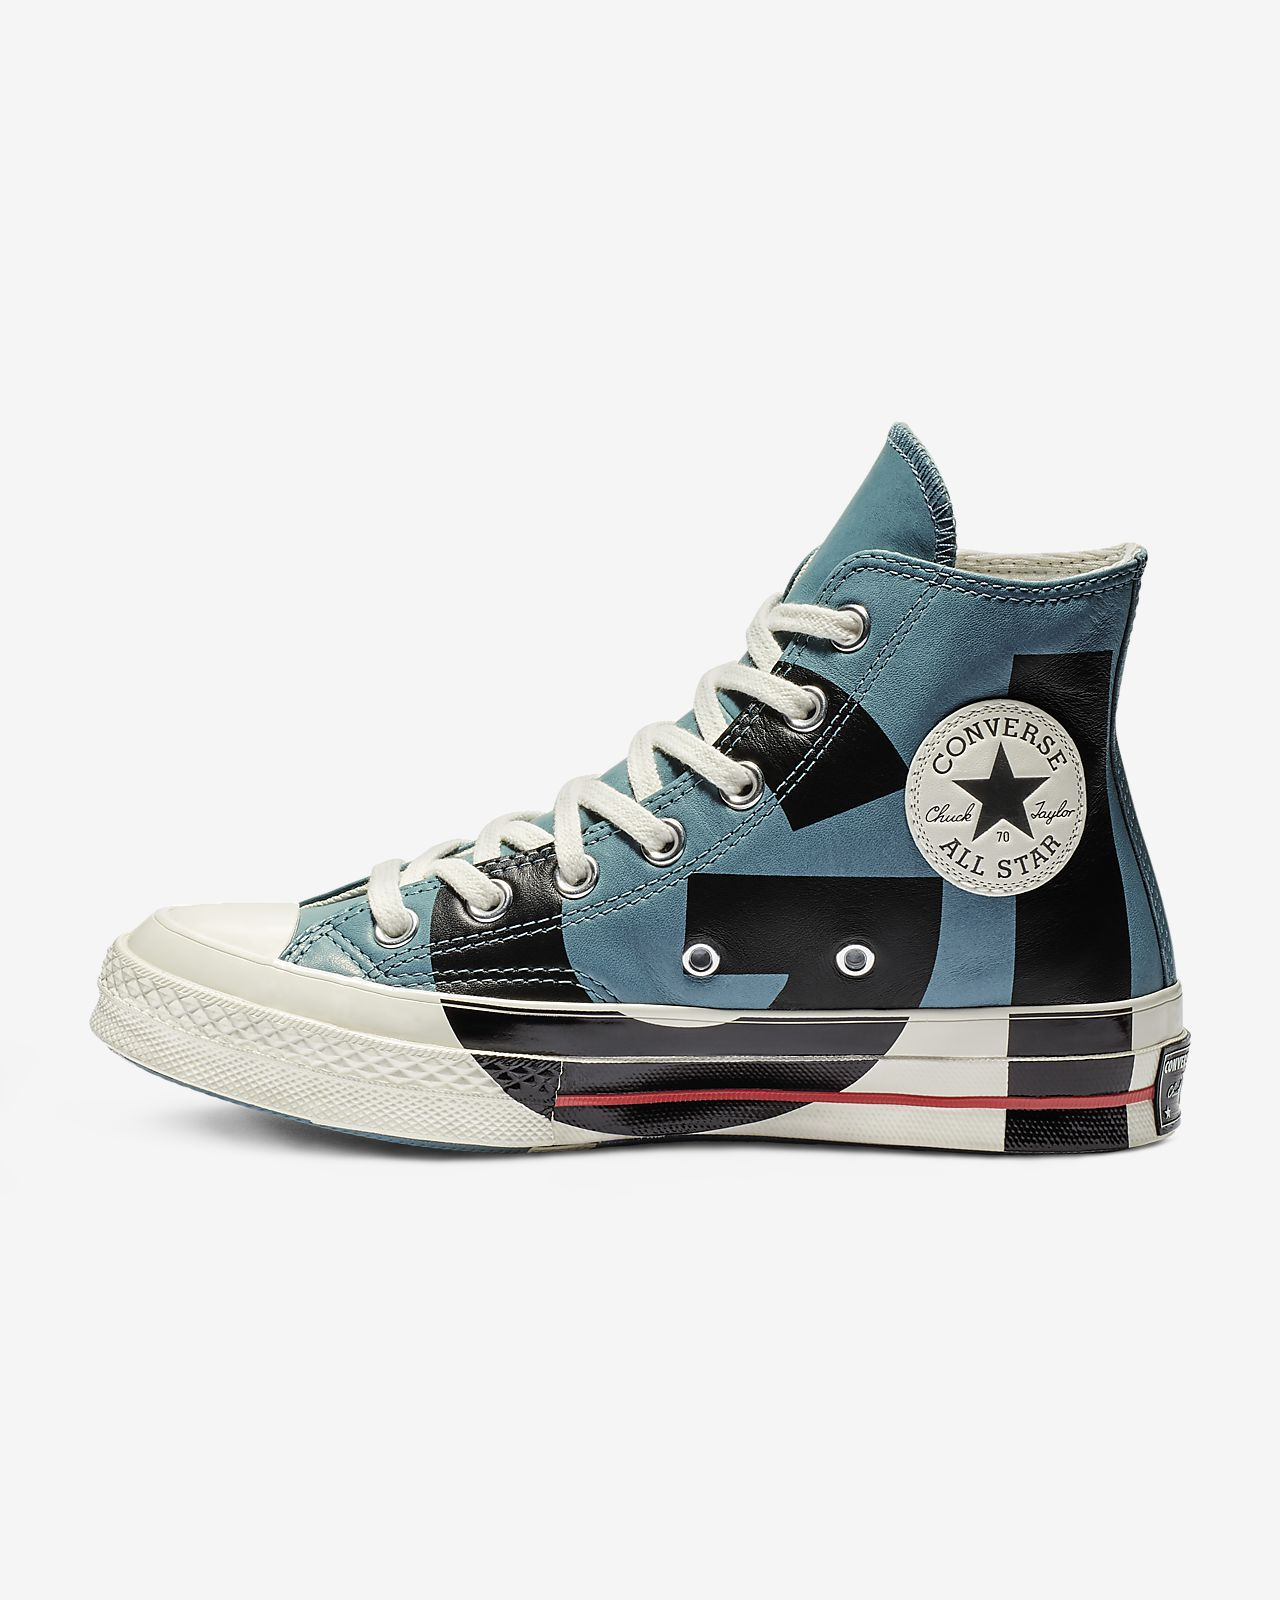 469a0b8b52b Converse Chuck 70 Love Graphic High Top Women s Shoe Converse Style